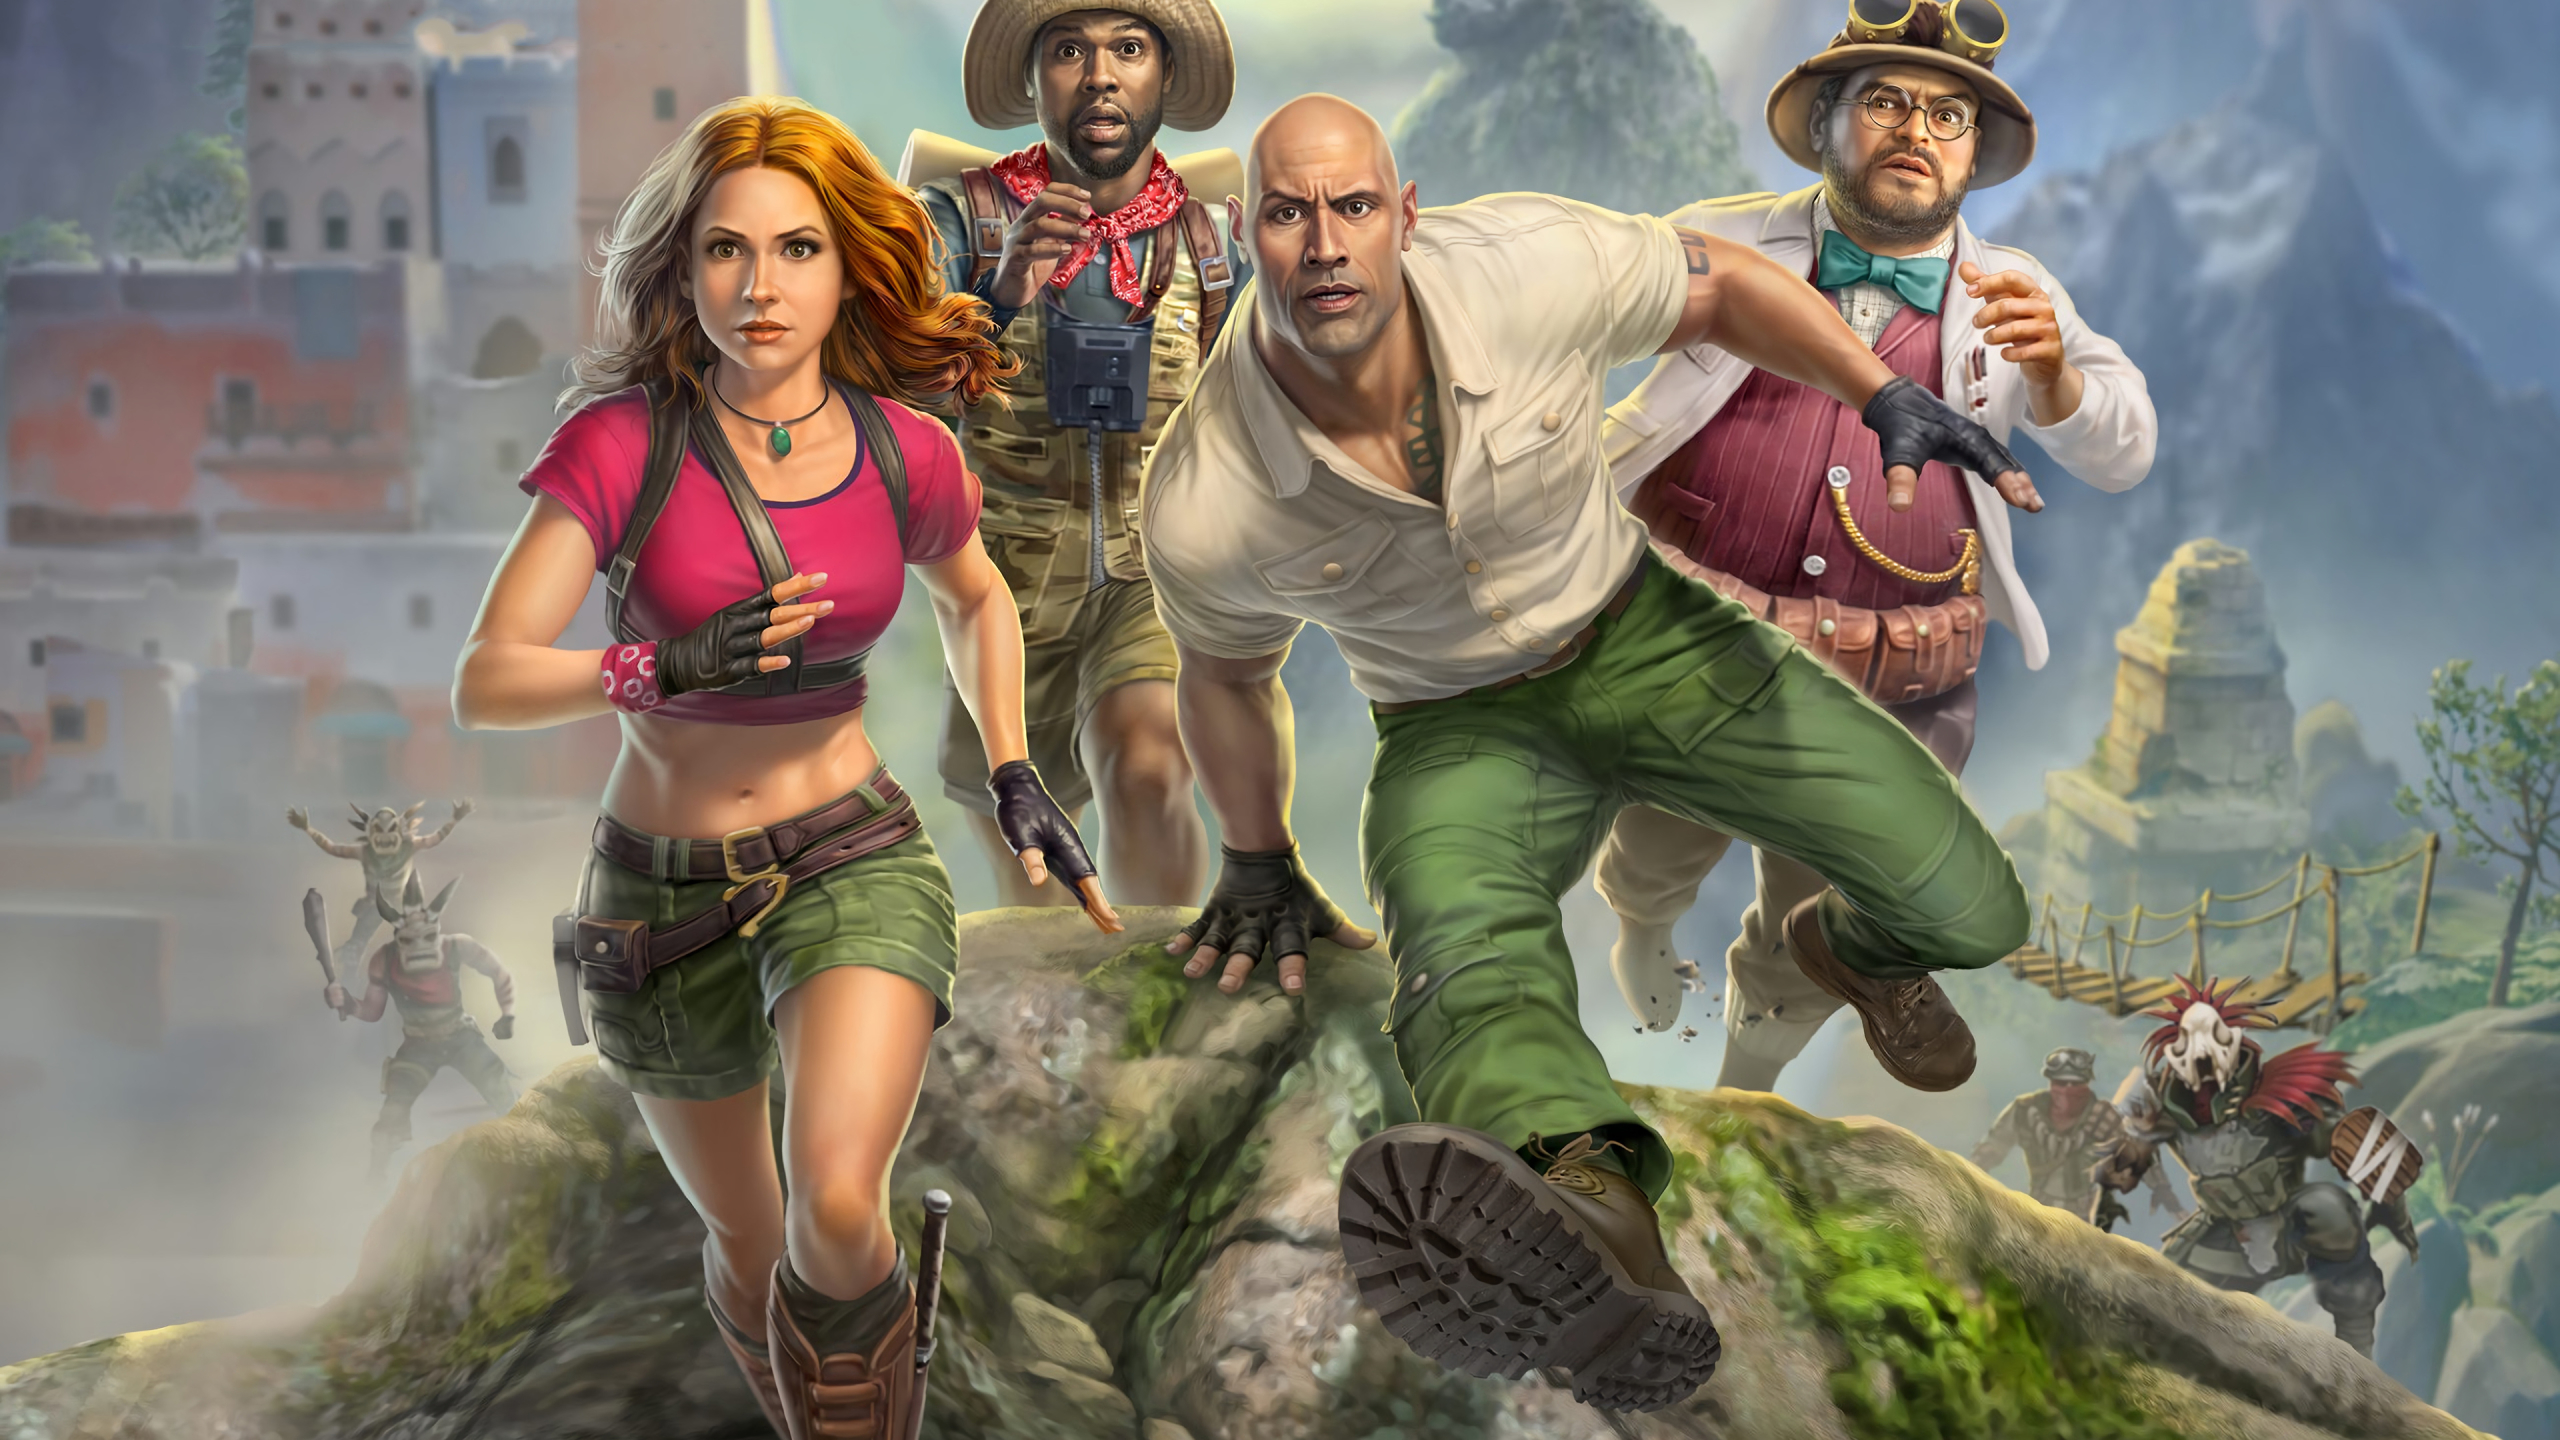 2560x1440 Jumanji The Video Game 1440p Resolution Wallpaper Hd Games 4k Wallpapers Images Photos And Background